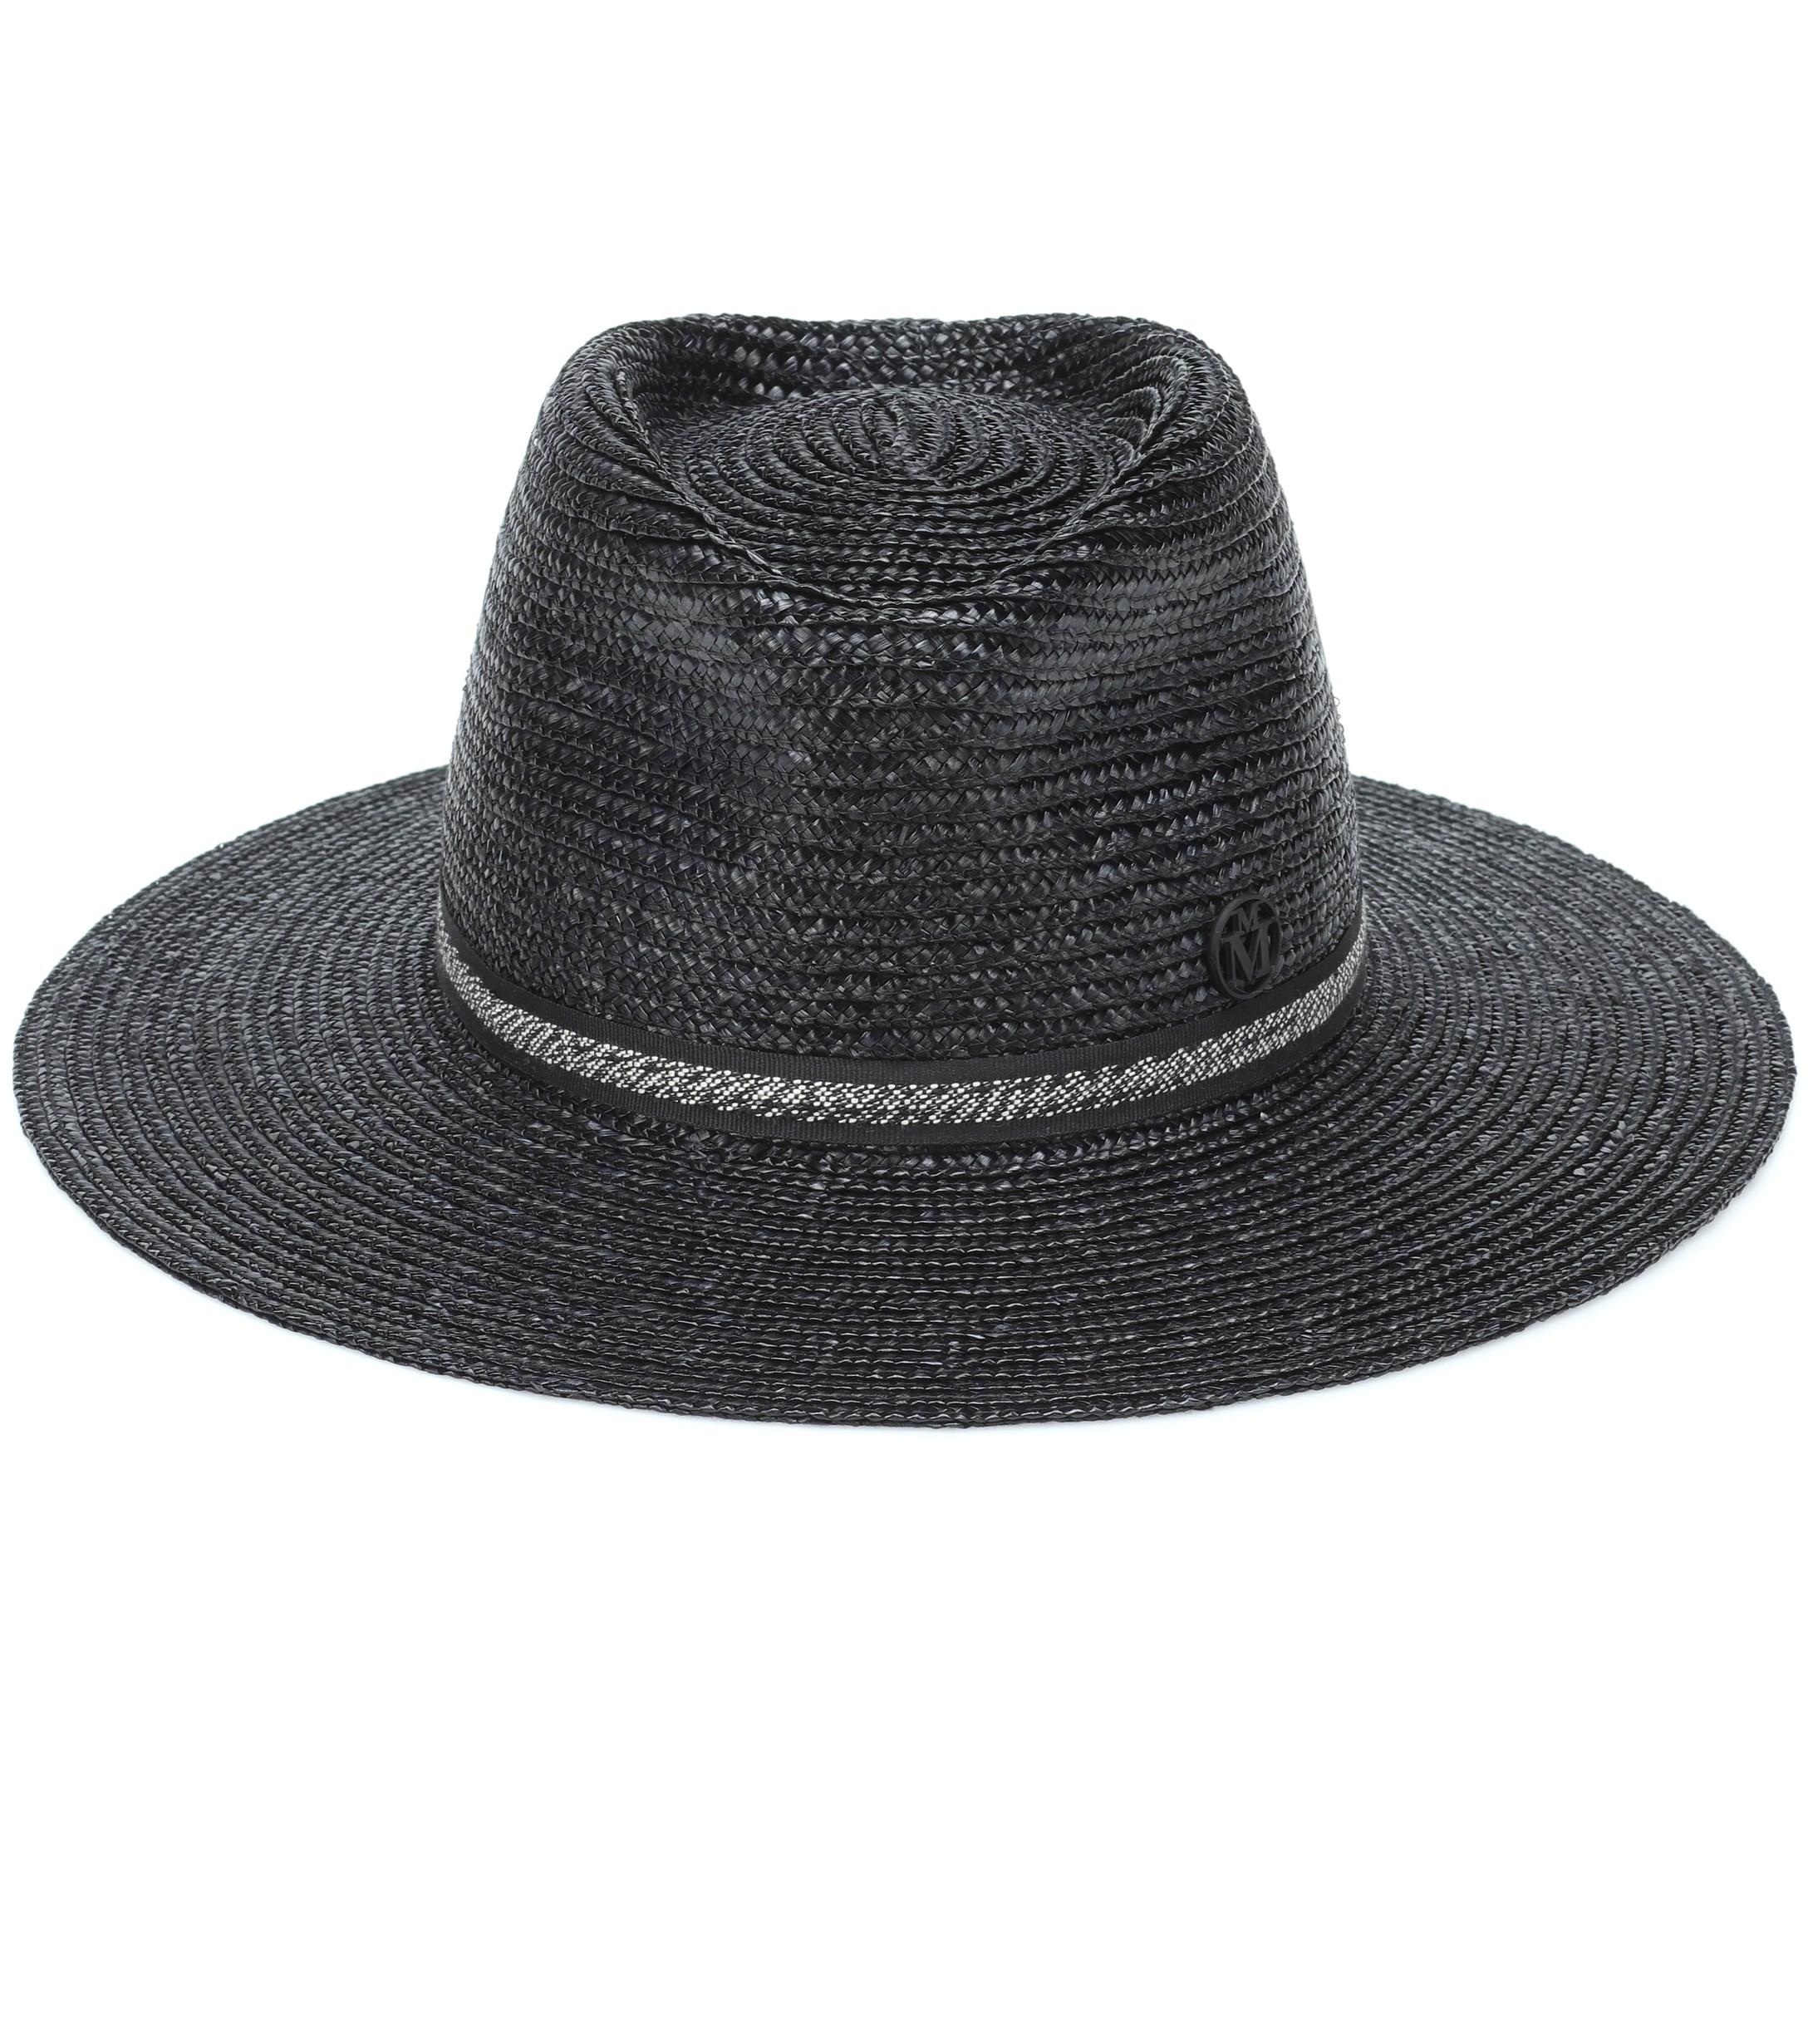 c430a389fed Maison Michel Charles Straw Fedora in Black - Lyst